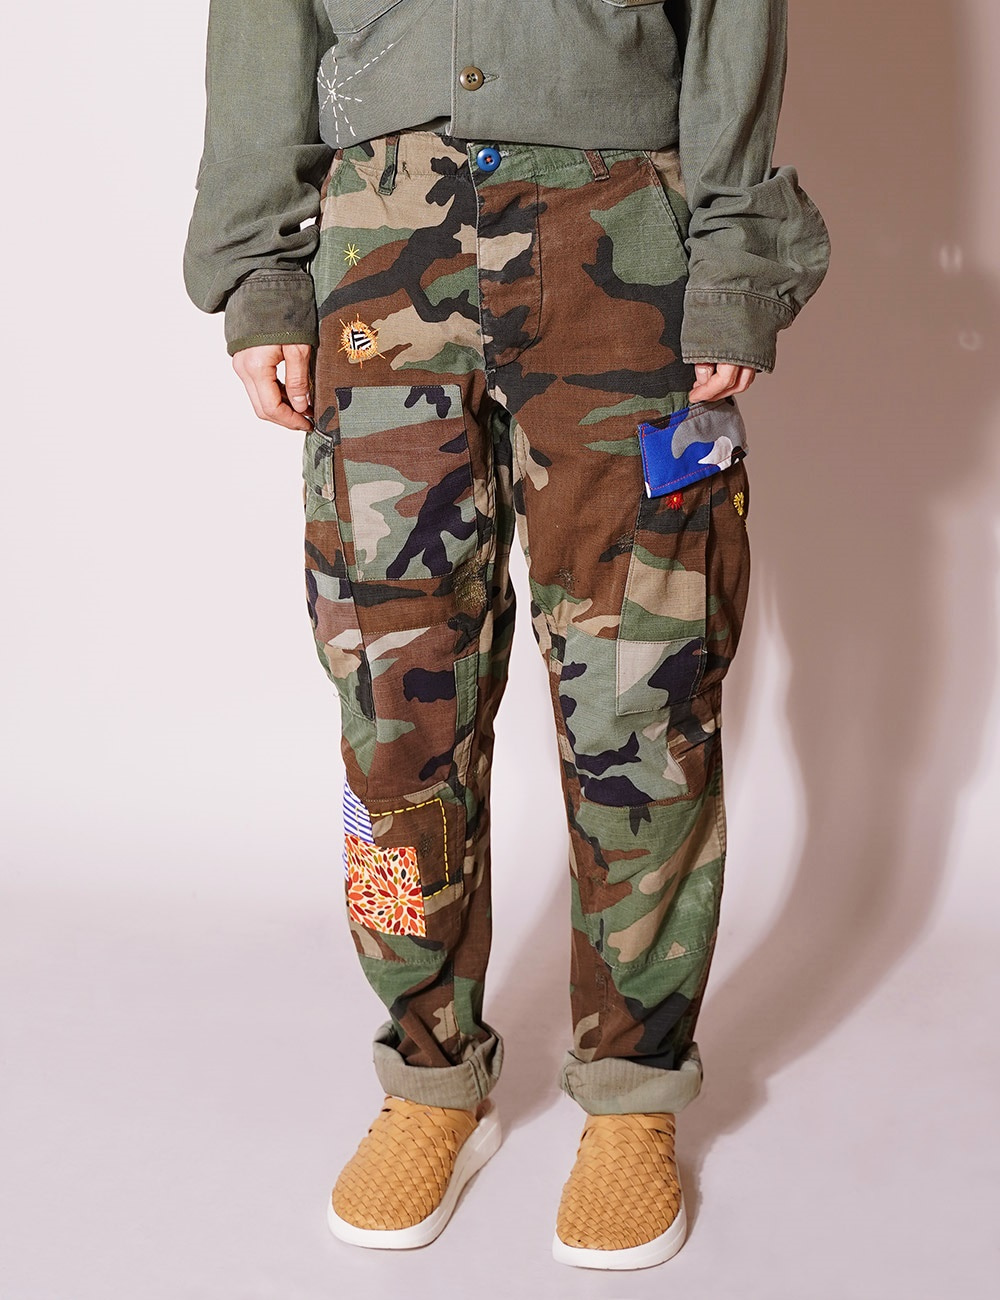 ATELIER & REPAIRS : CAMO CARGO PANT ON LSD (SIZE 26)